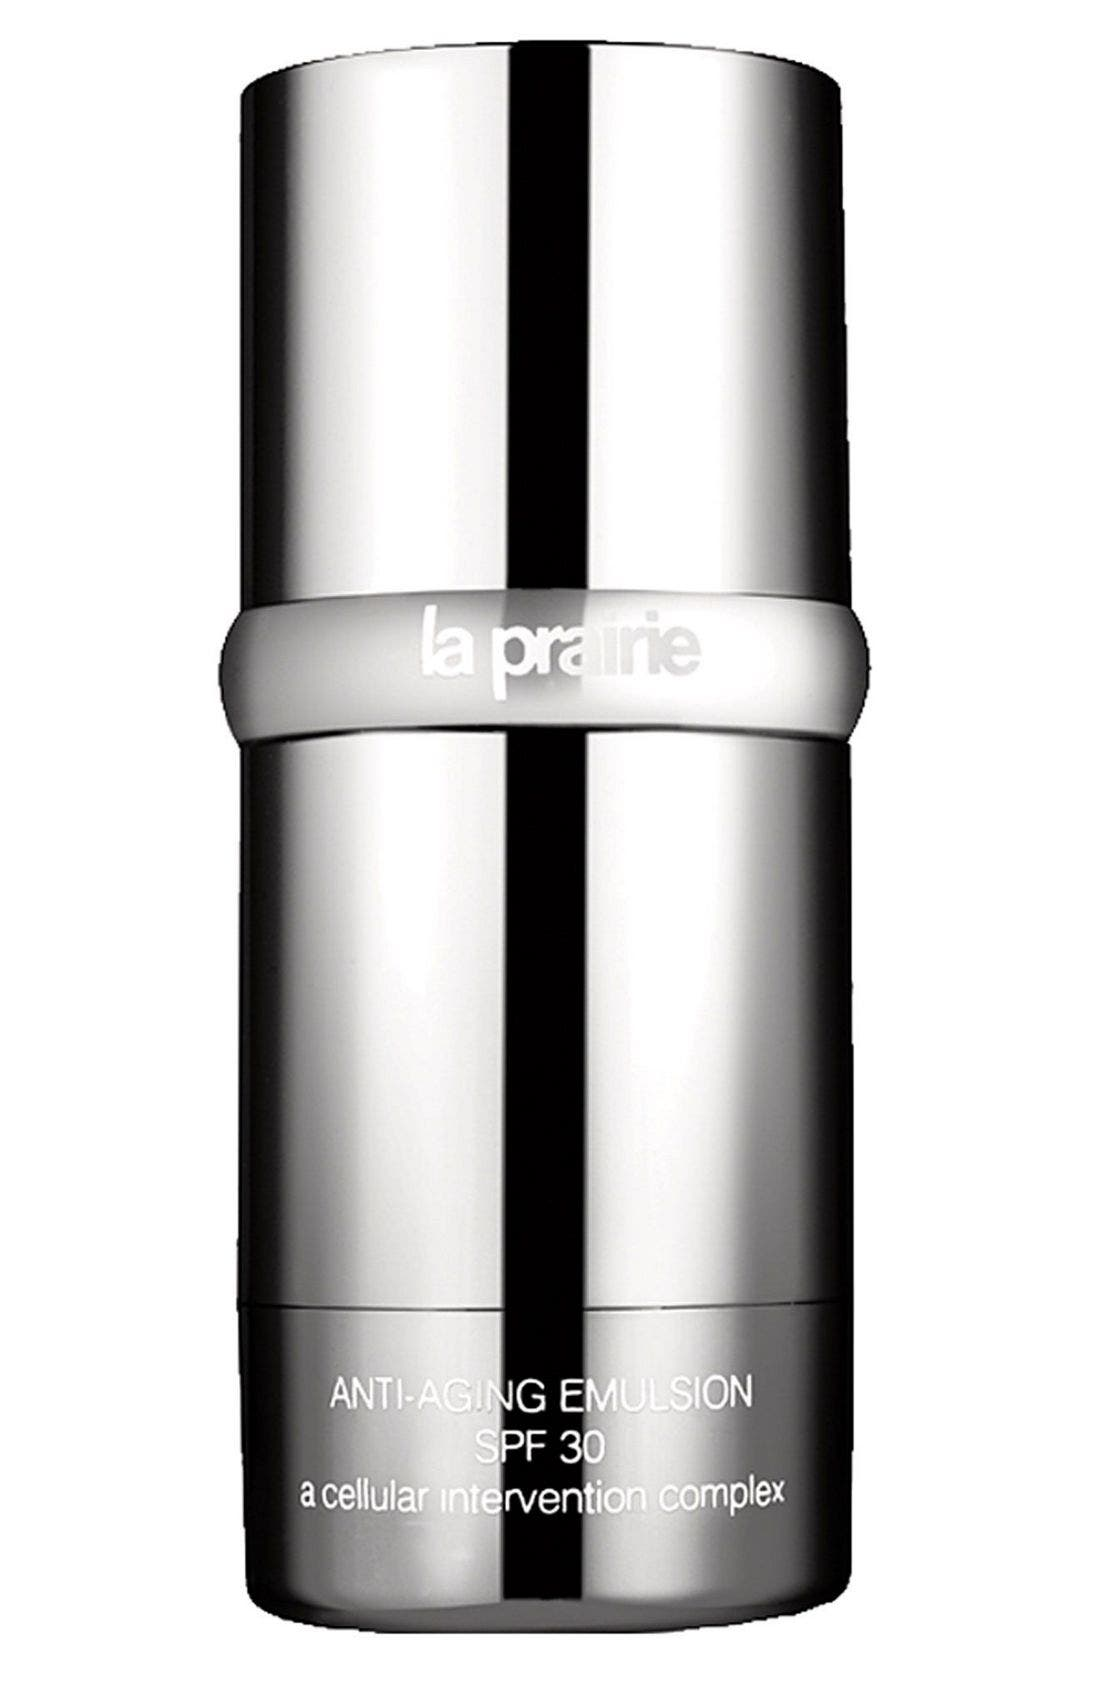 La Prairie Anti-Aging Emulsion Sunscreen Broad Spectrum SPF 30